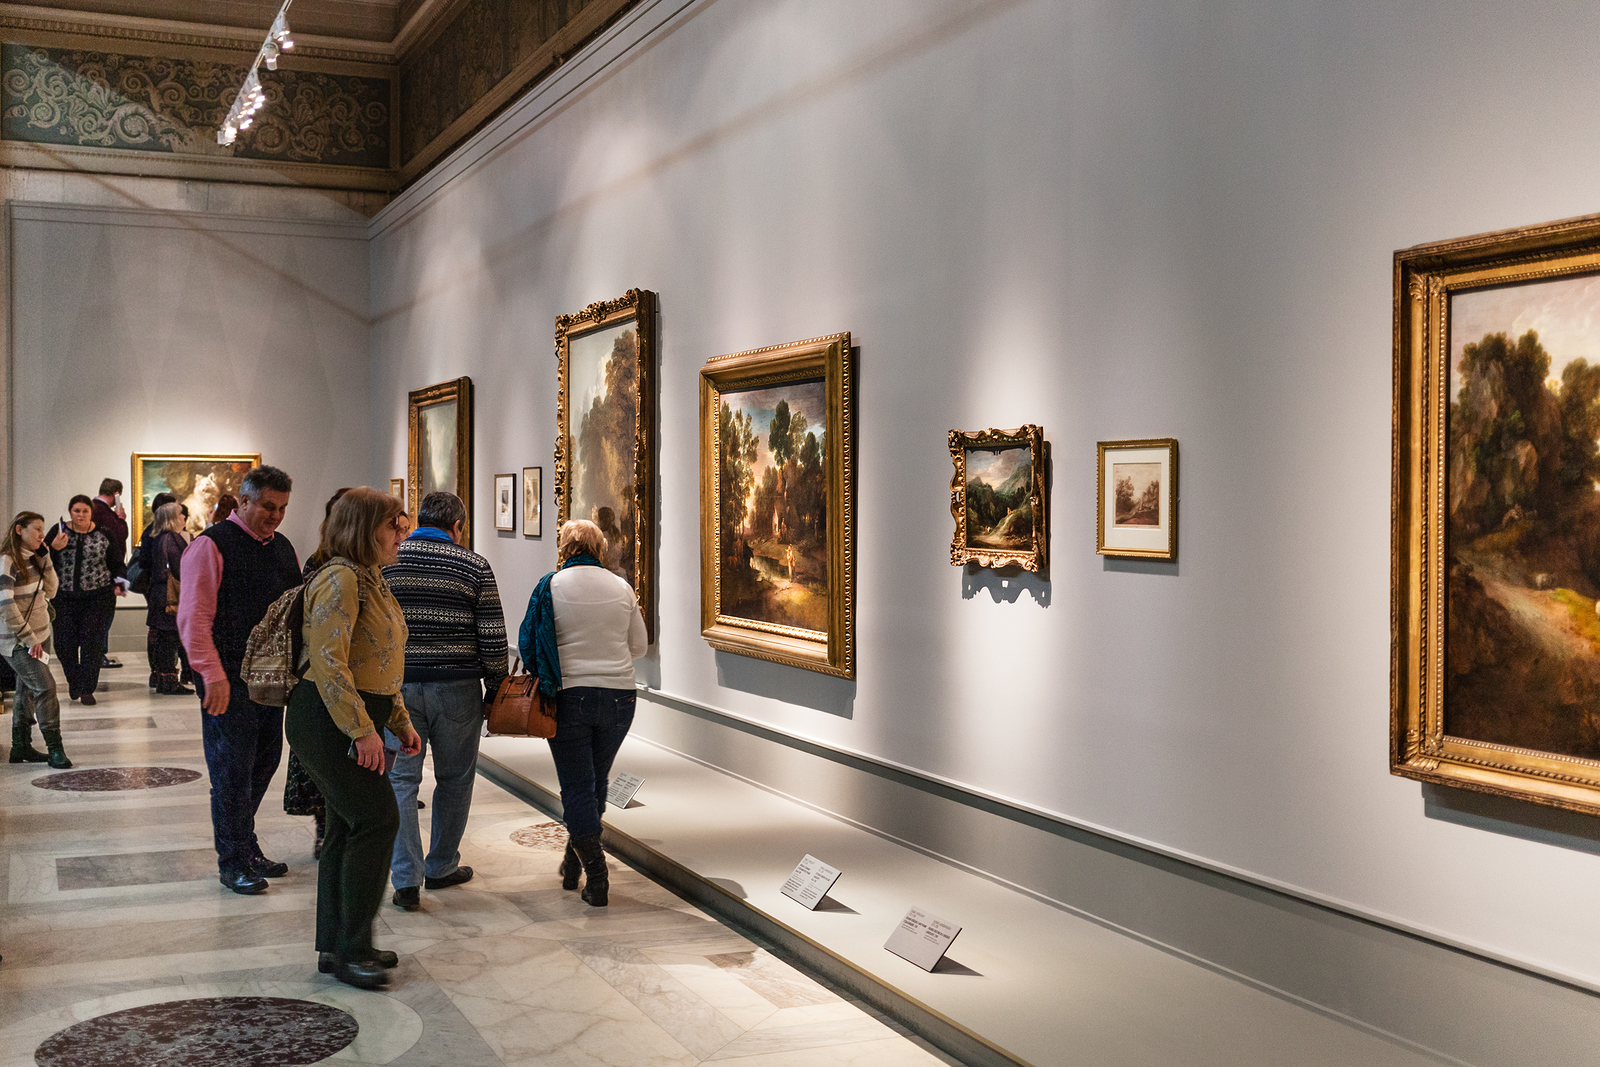 The Pushkin Museum – Home to Remarkable European Art in Moscow